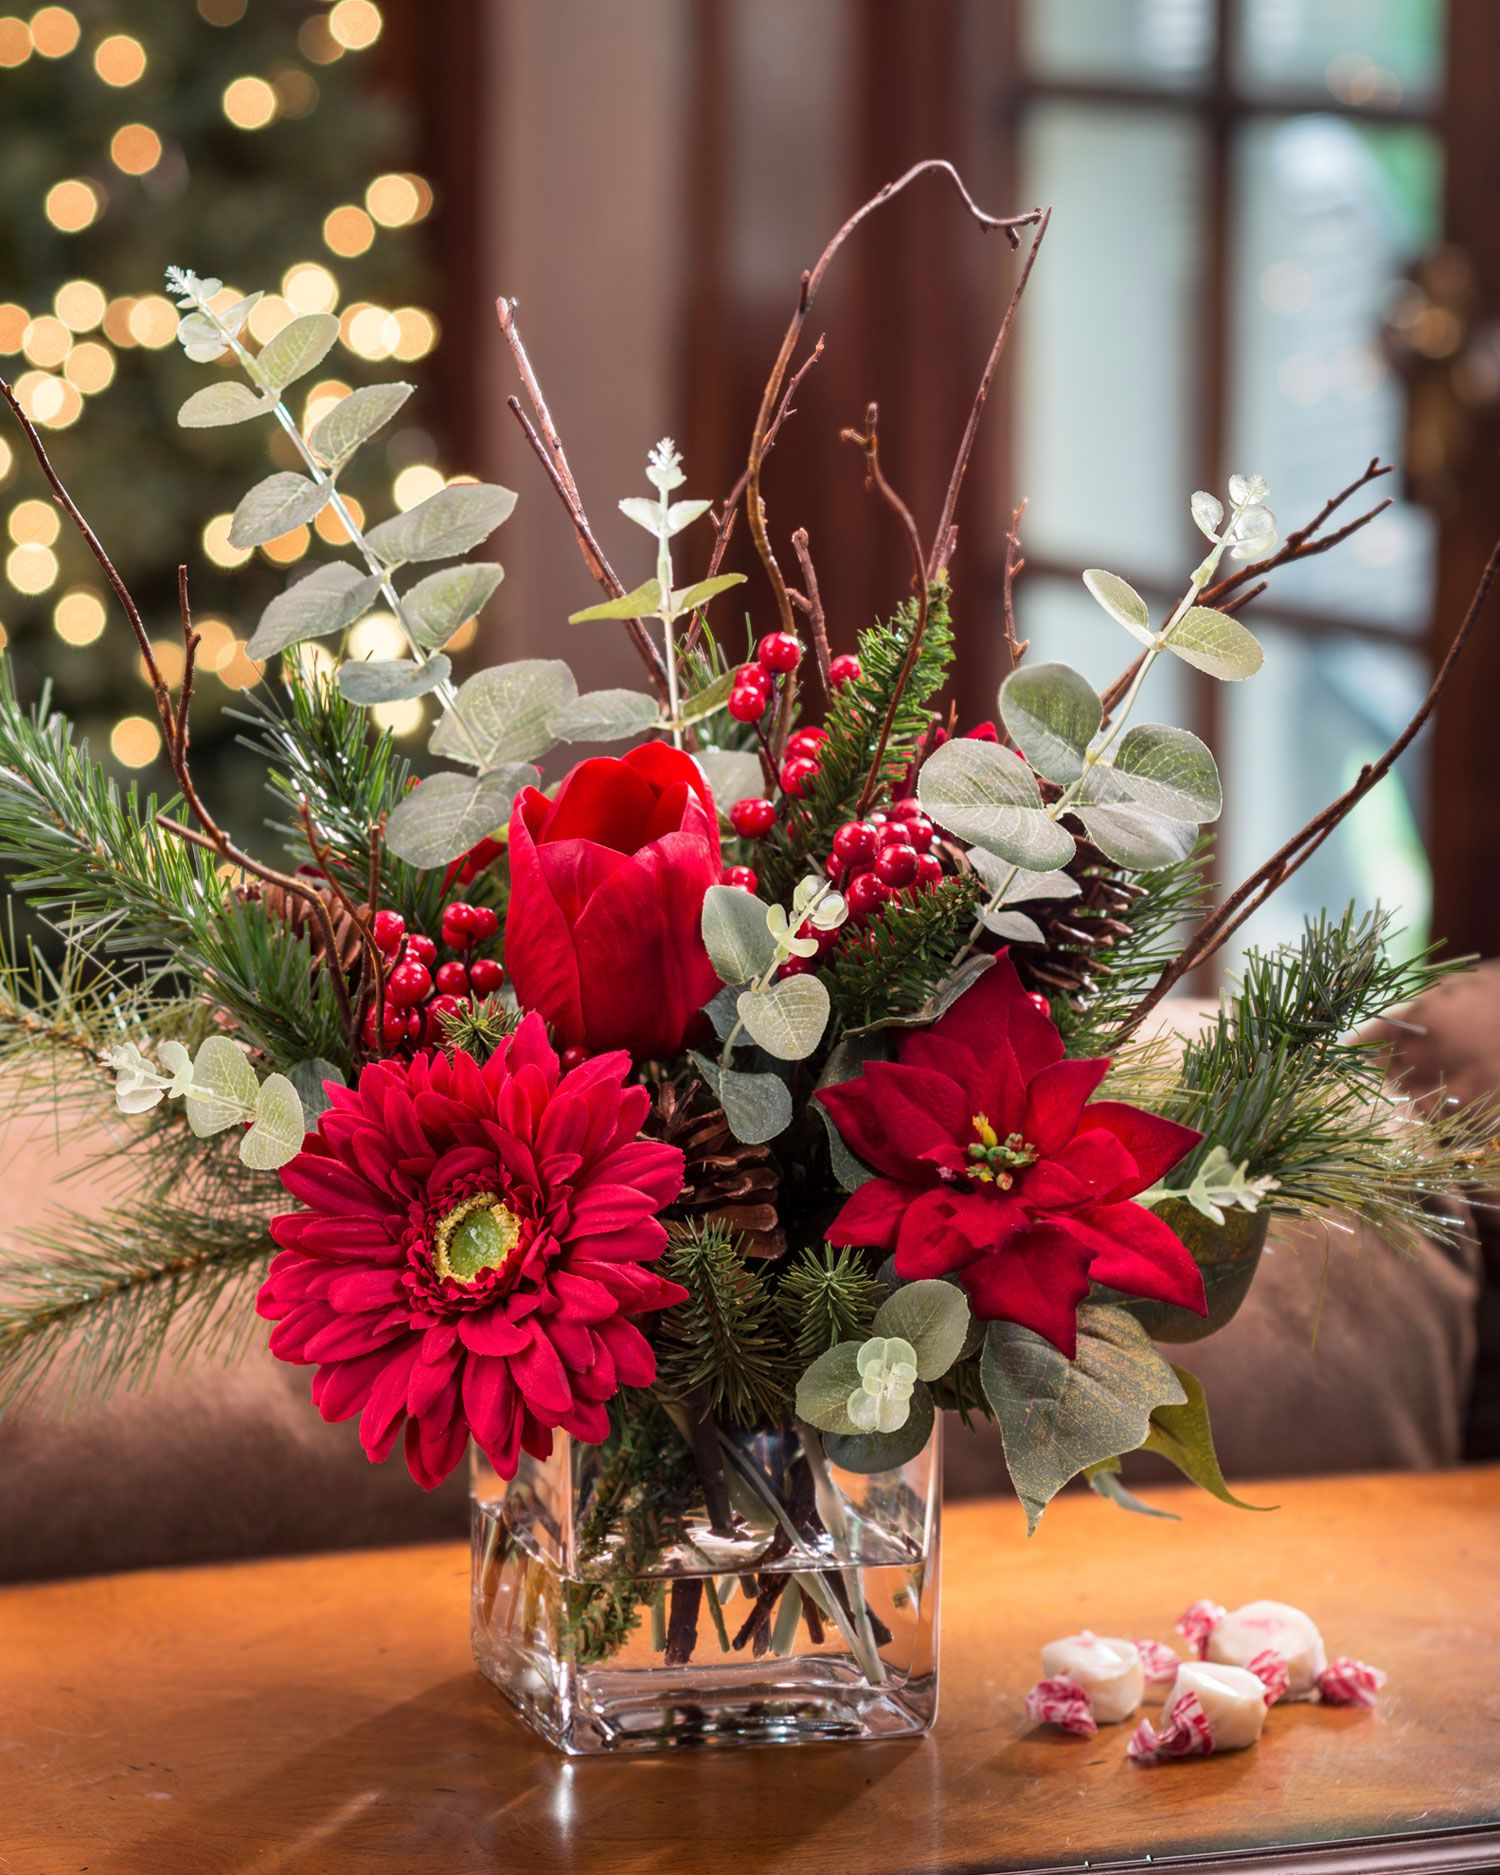 Daisy Tulip Poinsettiasilk Flower Centerpiece Christmas Flower Arrangements Flower Centerpieces Christmas Floral Arrangements